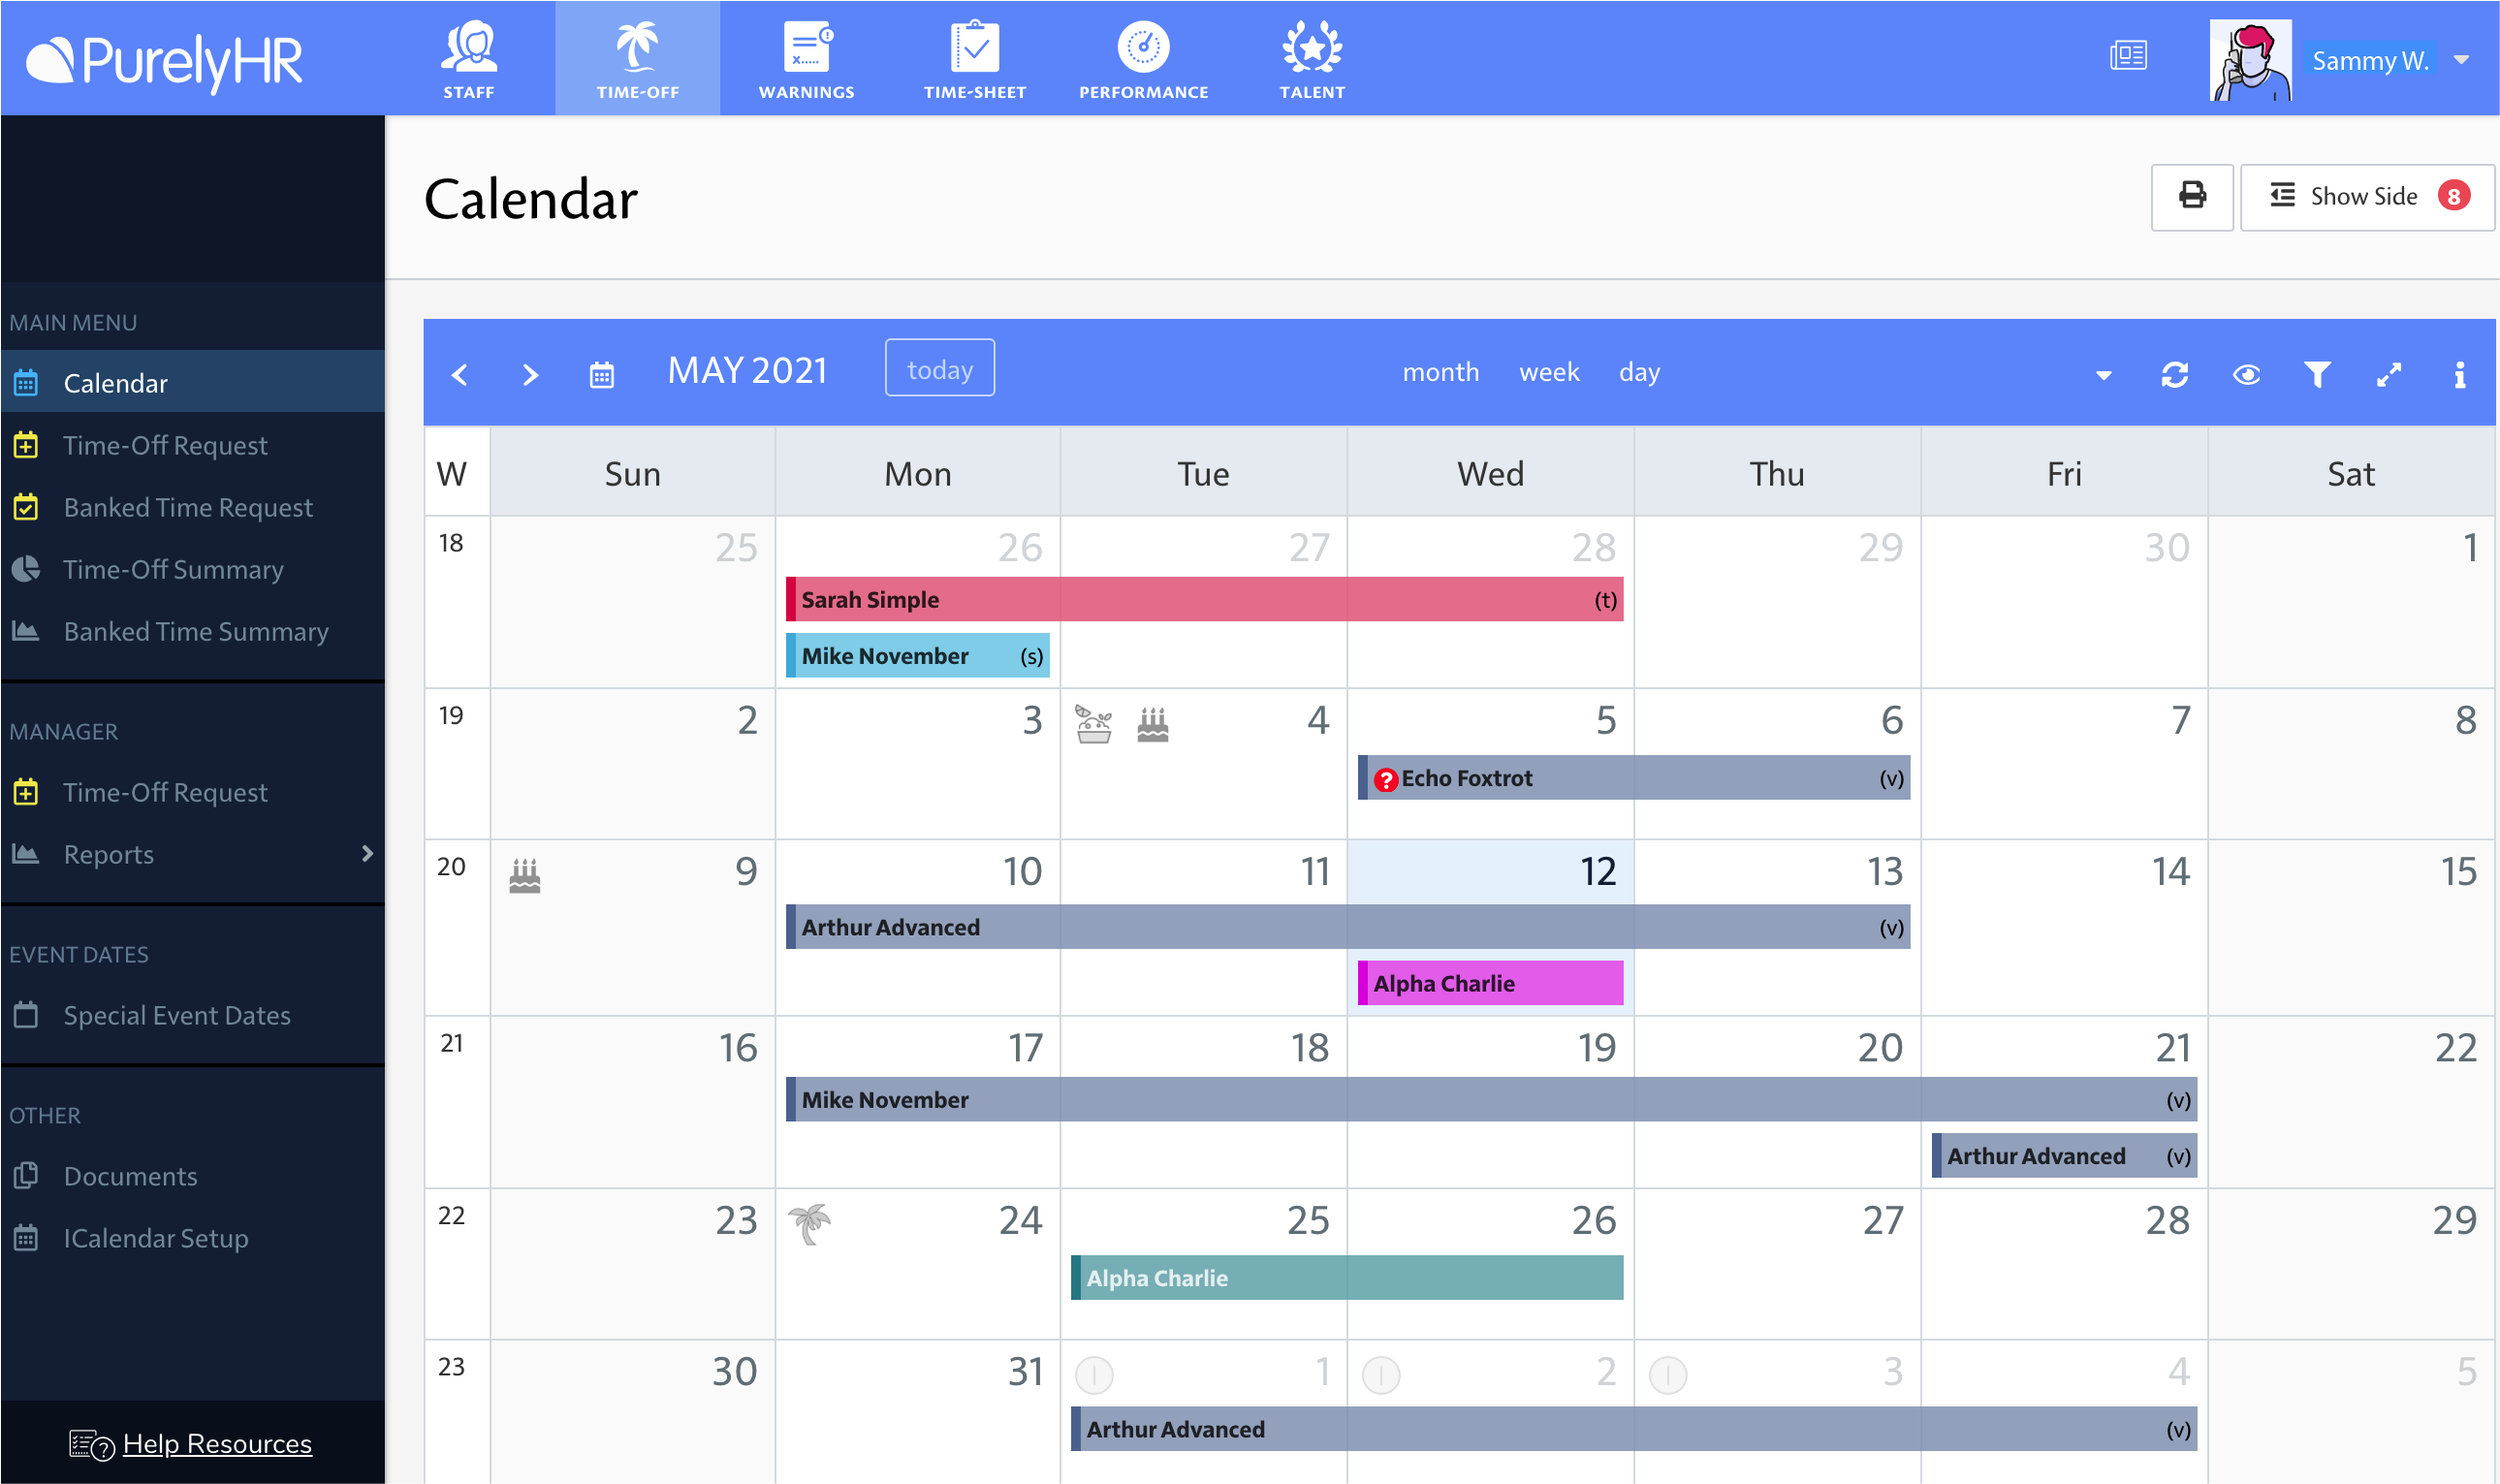 PurelyHR Software - Time-Off's shared leave calendar gives you an at-a-glance look at upcoming time-off. Calendar can also be synced with Outlook, Google, and Apple calendars.